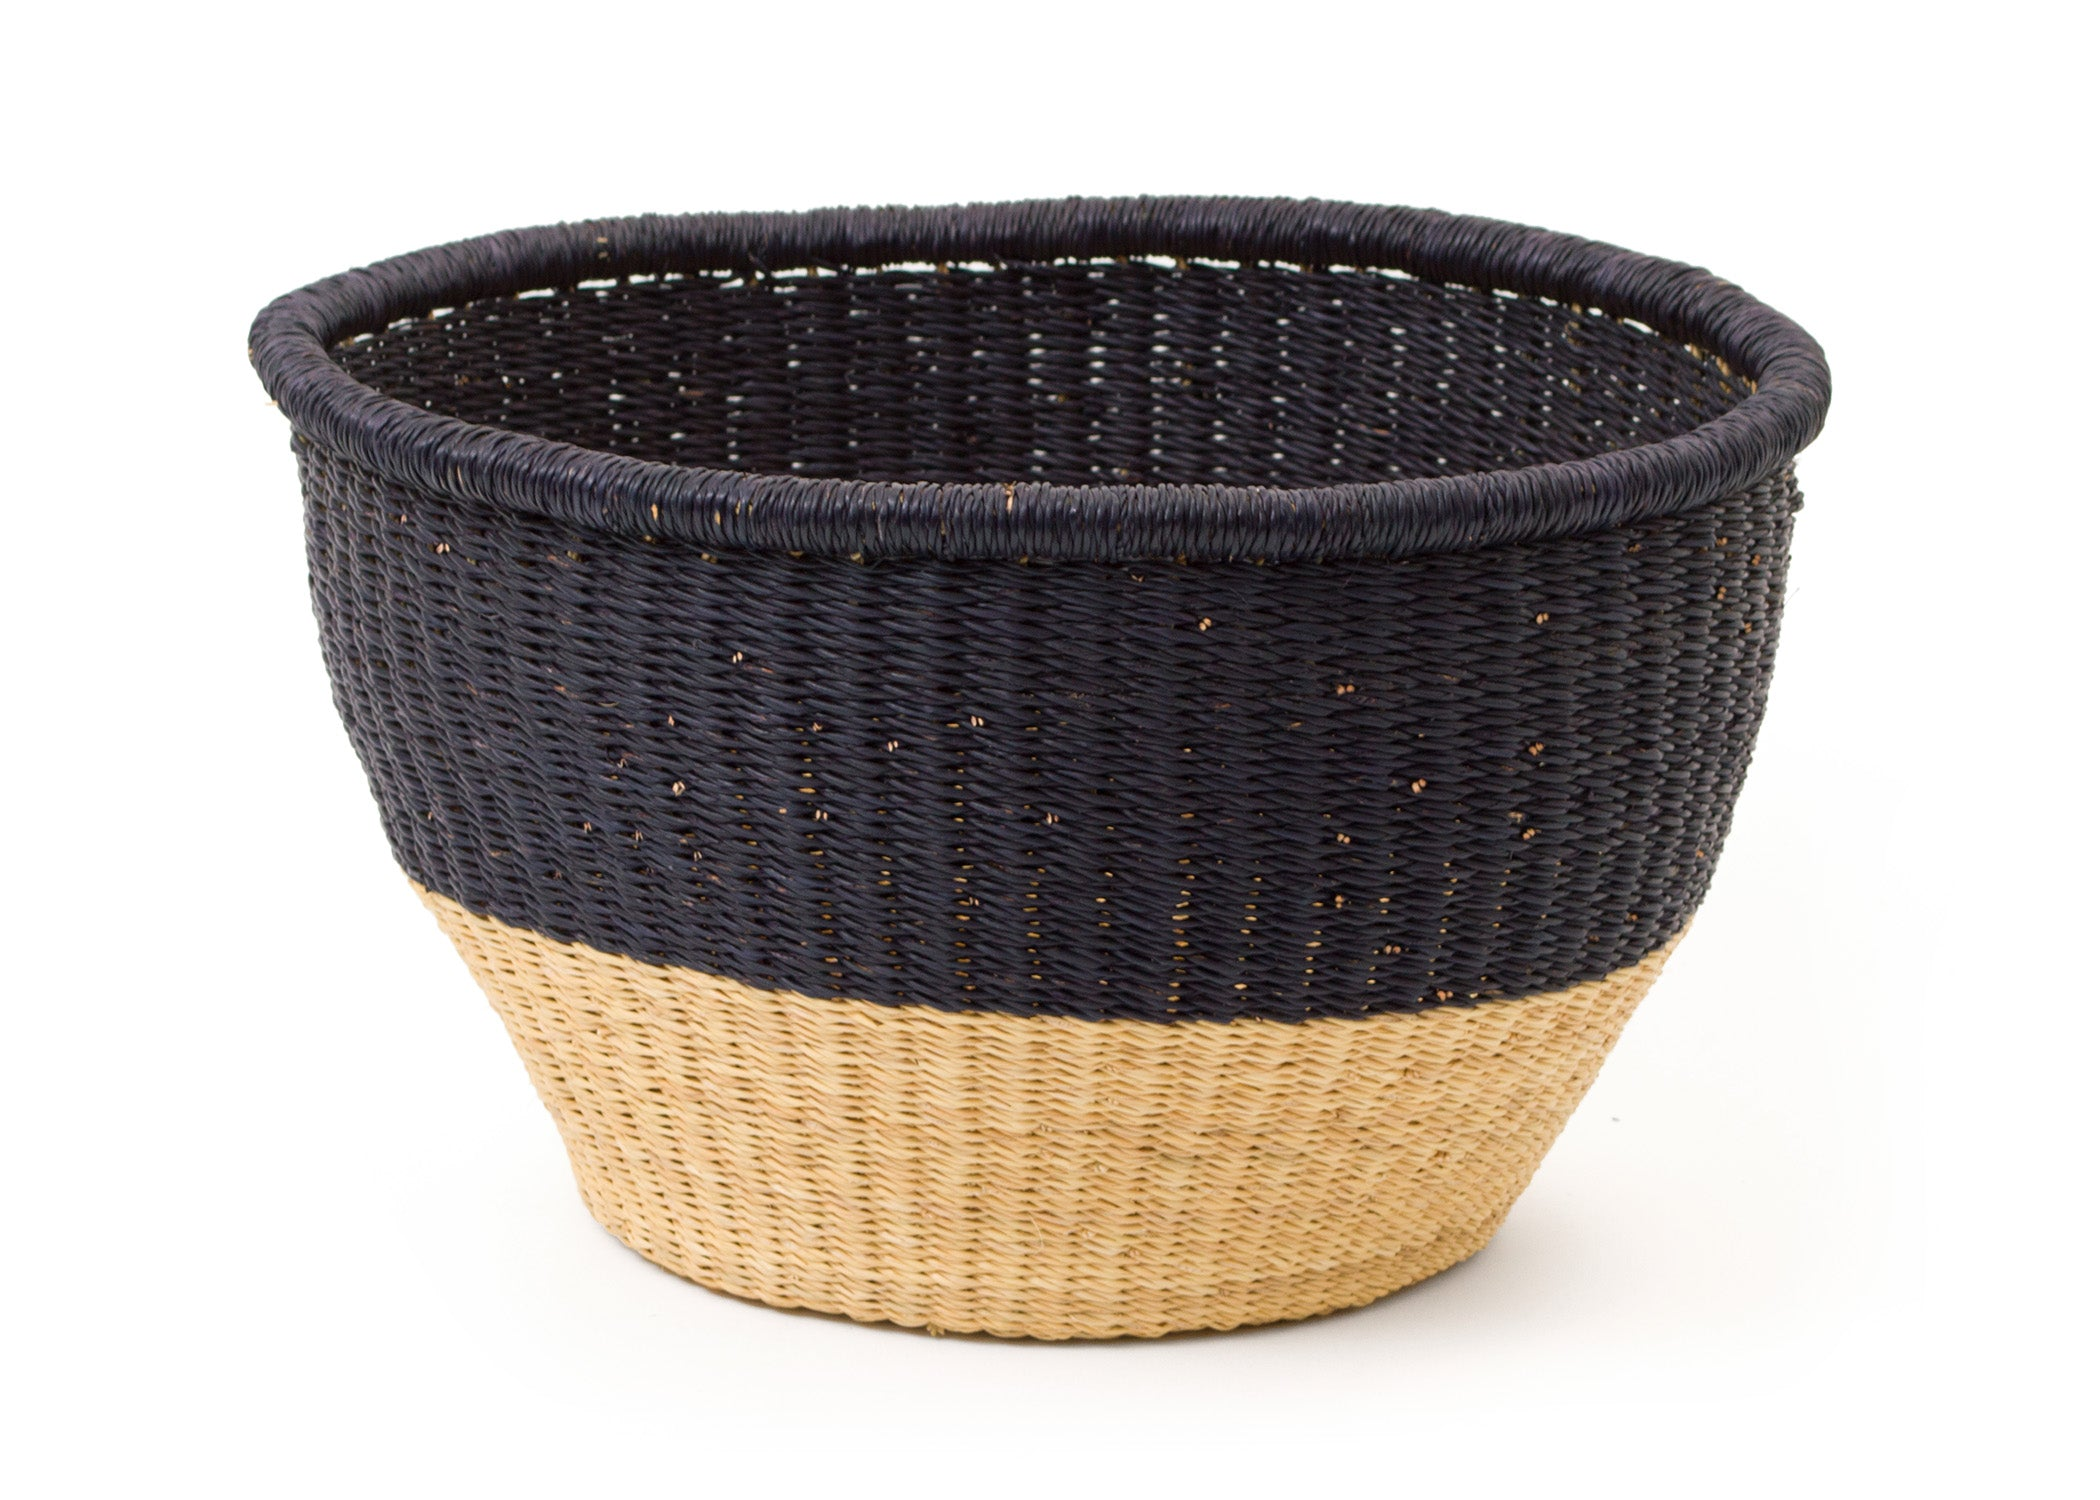 Large Black Dipped Storage Basket - KAZI - Artisan made high quality home decor and wall art